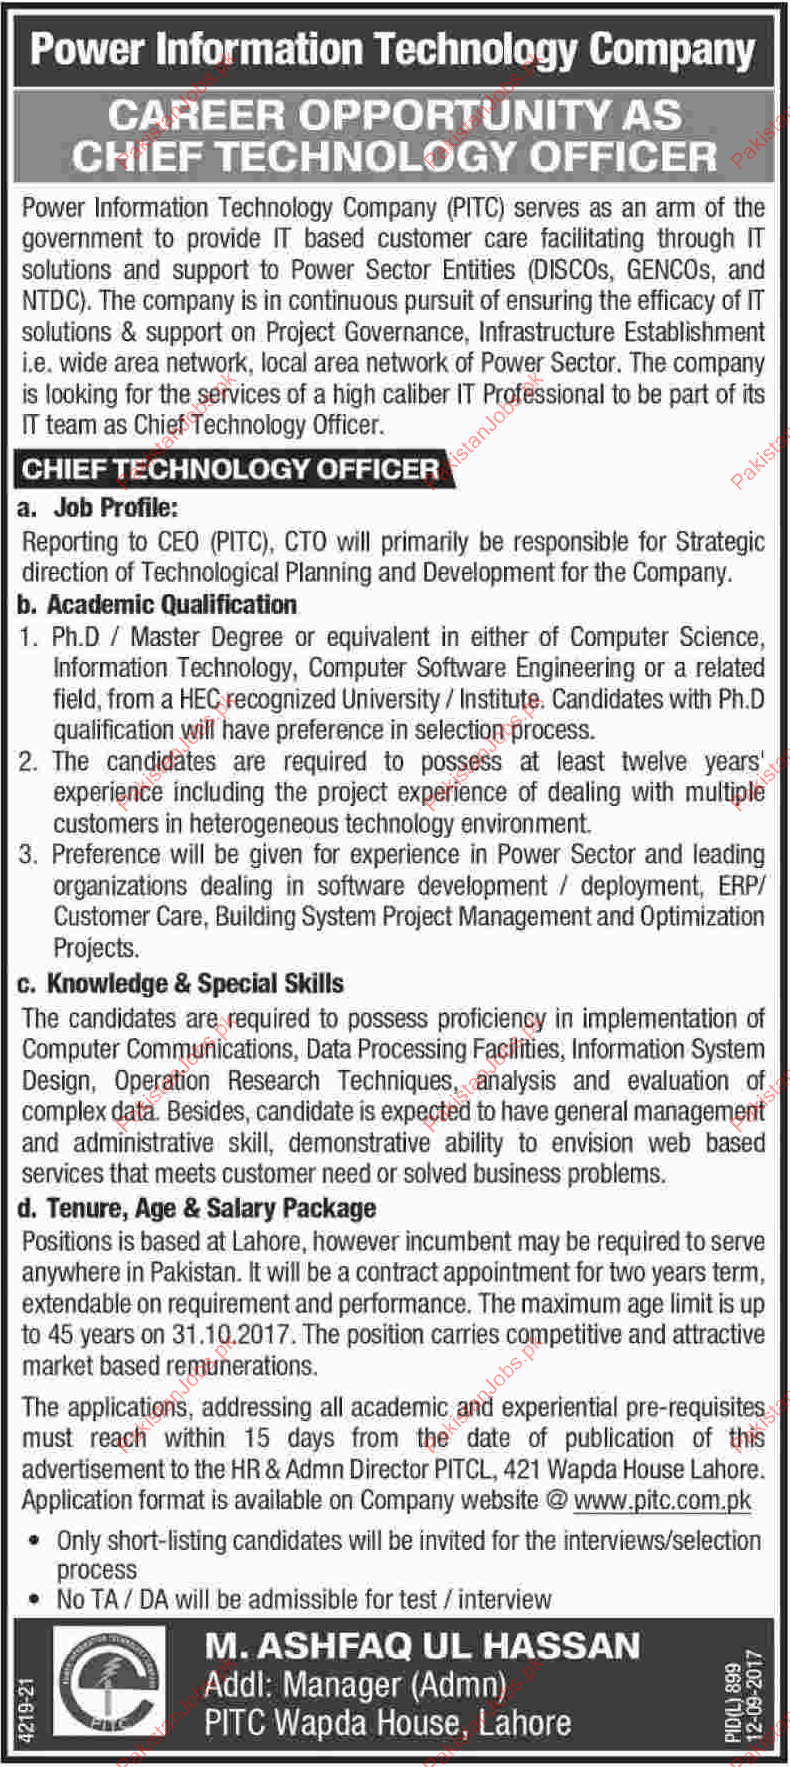 Power Information Technology Company Required Chief Officer